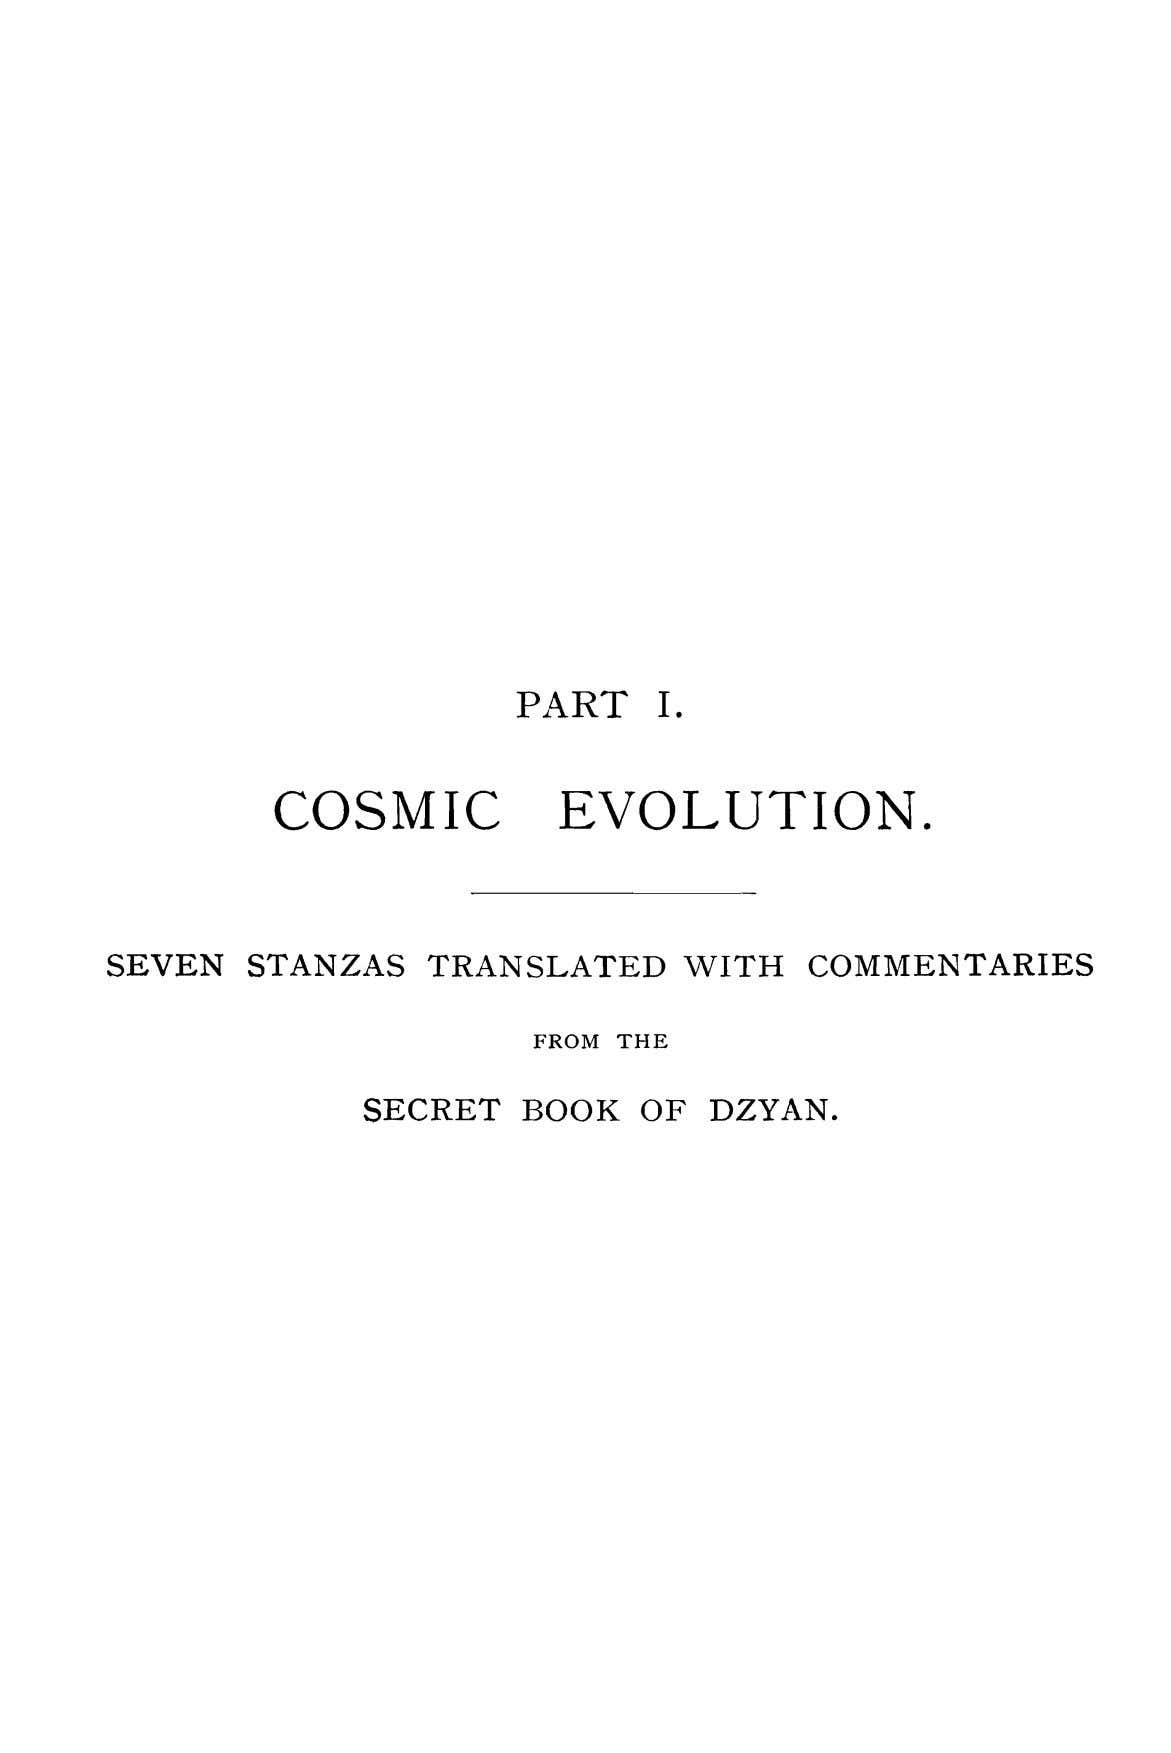 Pi\.RT I. COSMIC EVOLUTION. SEVEN STANZAS TRANSLATED vVITH COMMENTARIES FROM THE SECRET BOOK OF DZYAN.